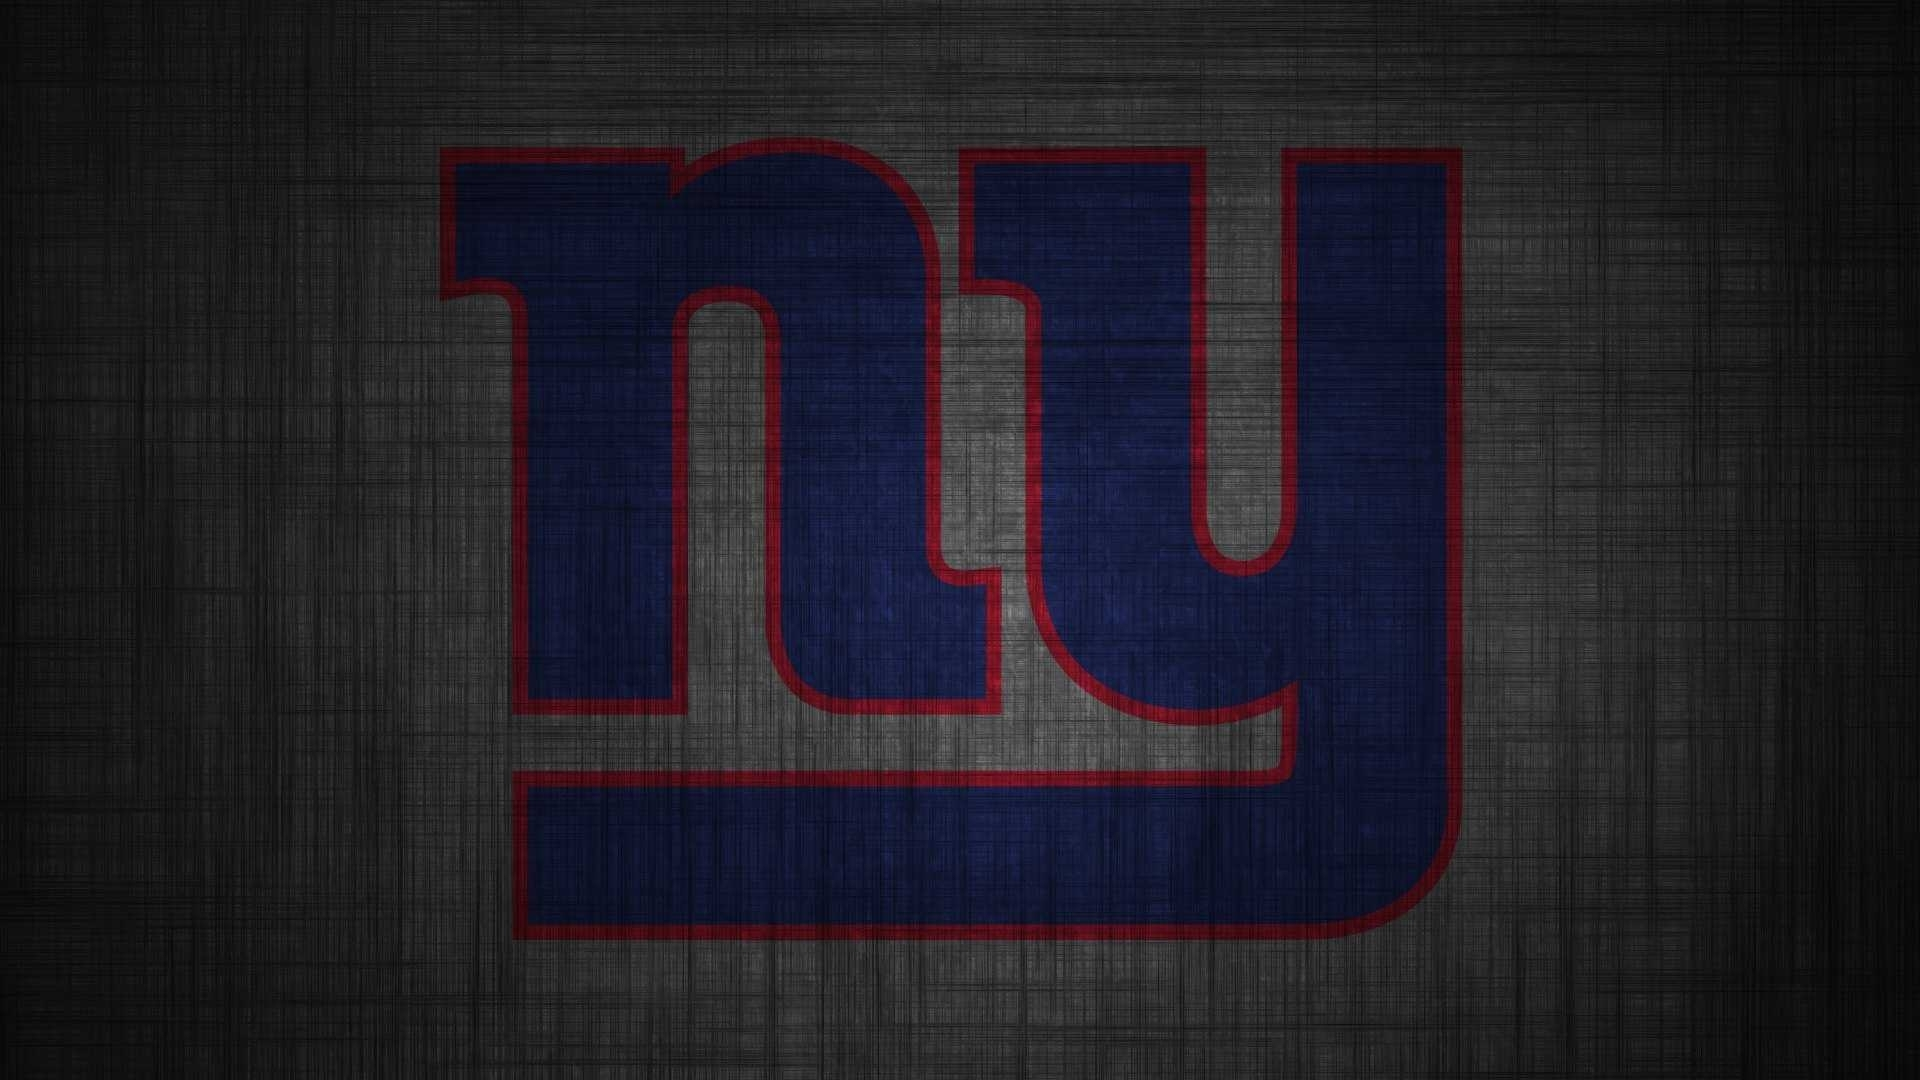 ny giants wallpaper full hd computer for smartphone new york